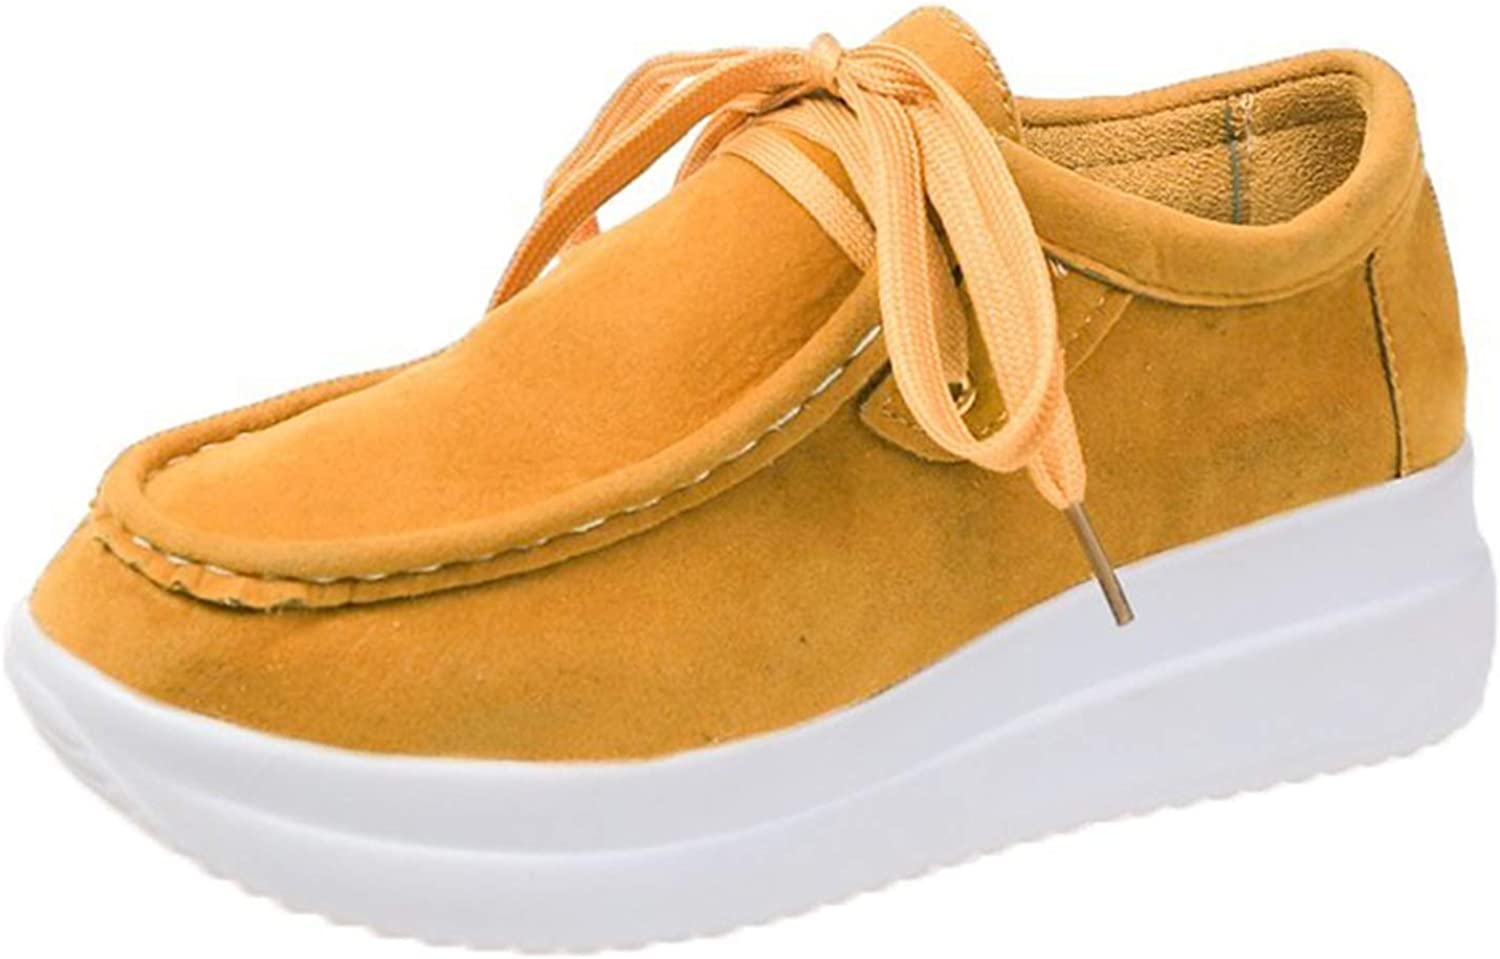 Erocalli Casual Lace up Loafers Shoes Platform Fashion Sneakers for Women Comfortable Walking Shoes Spring Tennis Shoes Yellow